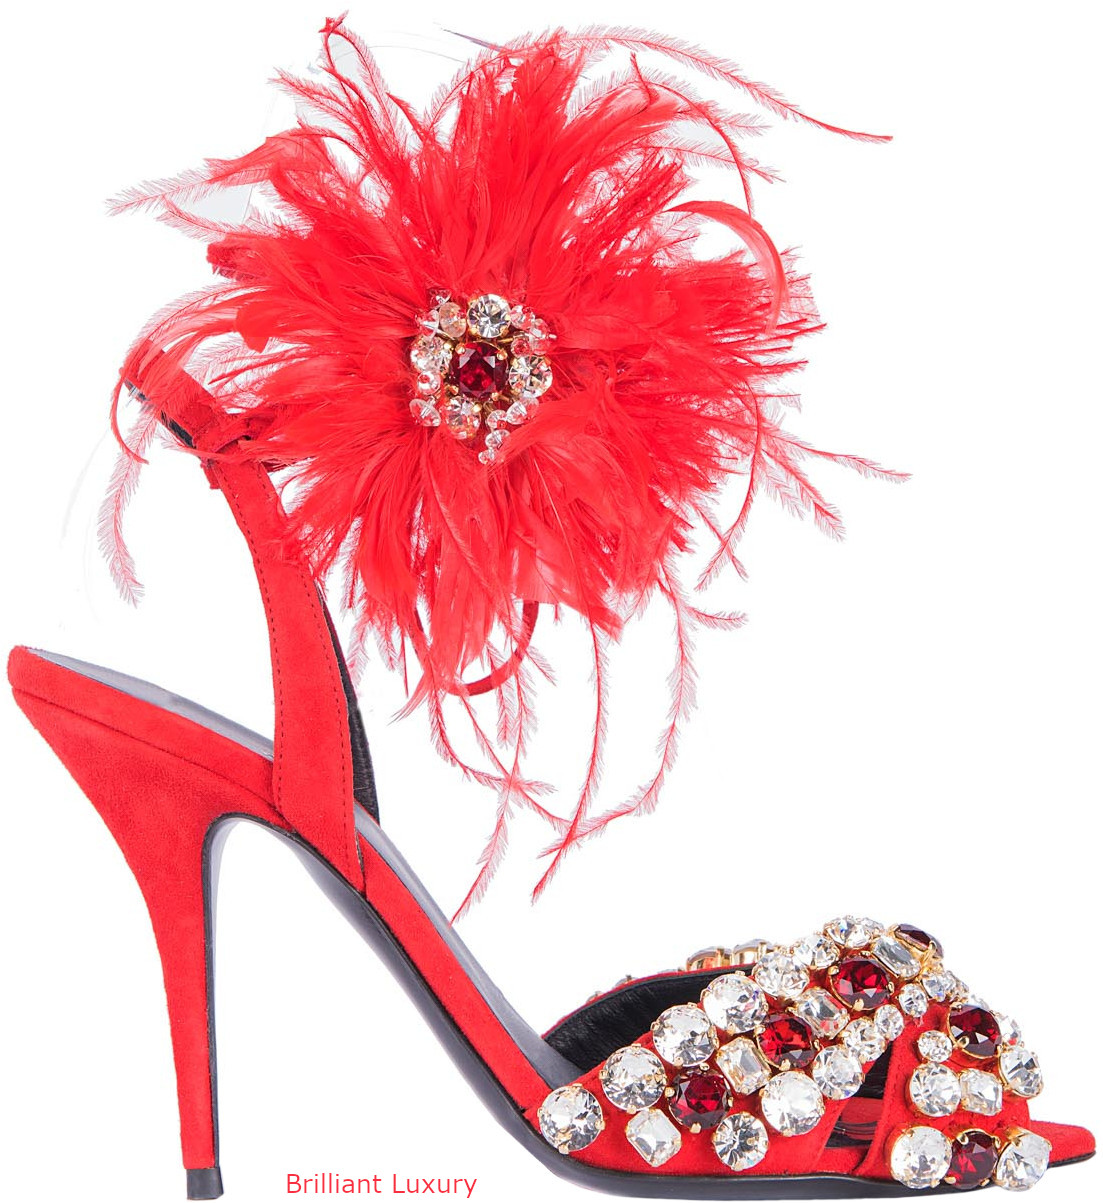 Gedebe bejeweled and feathered sandals in red